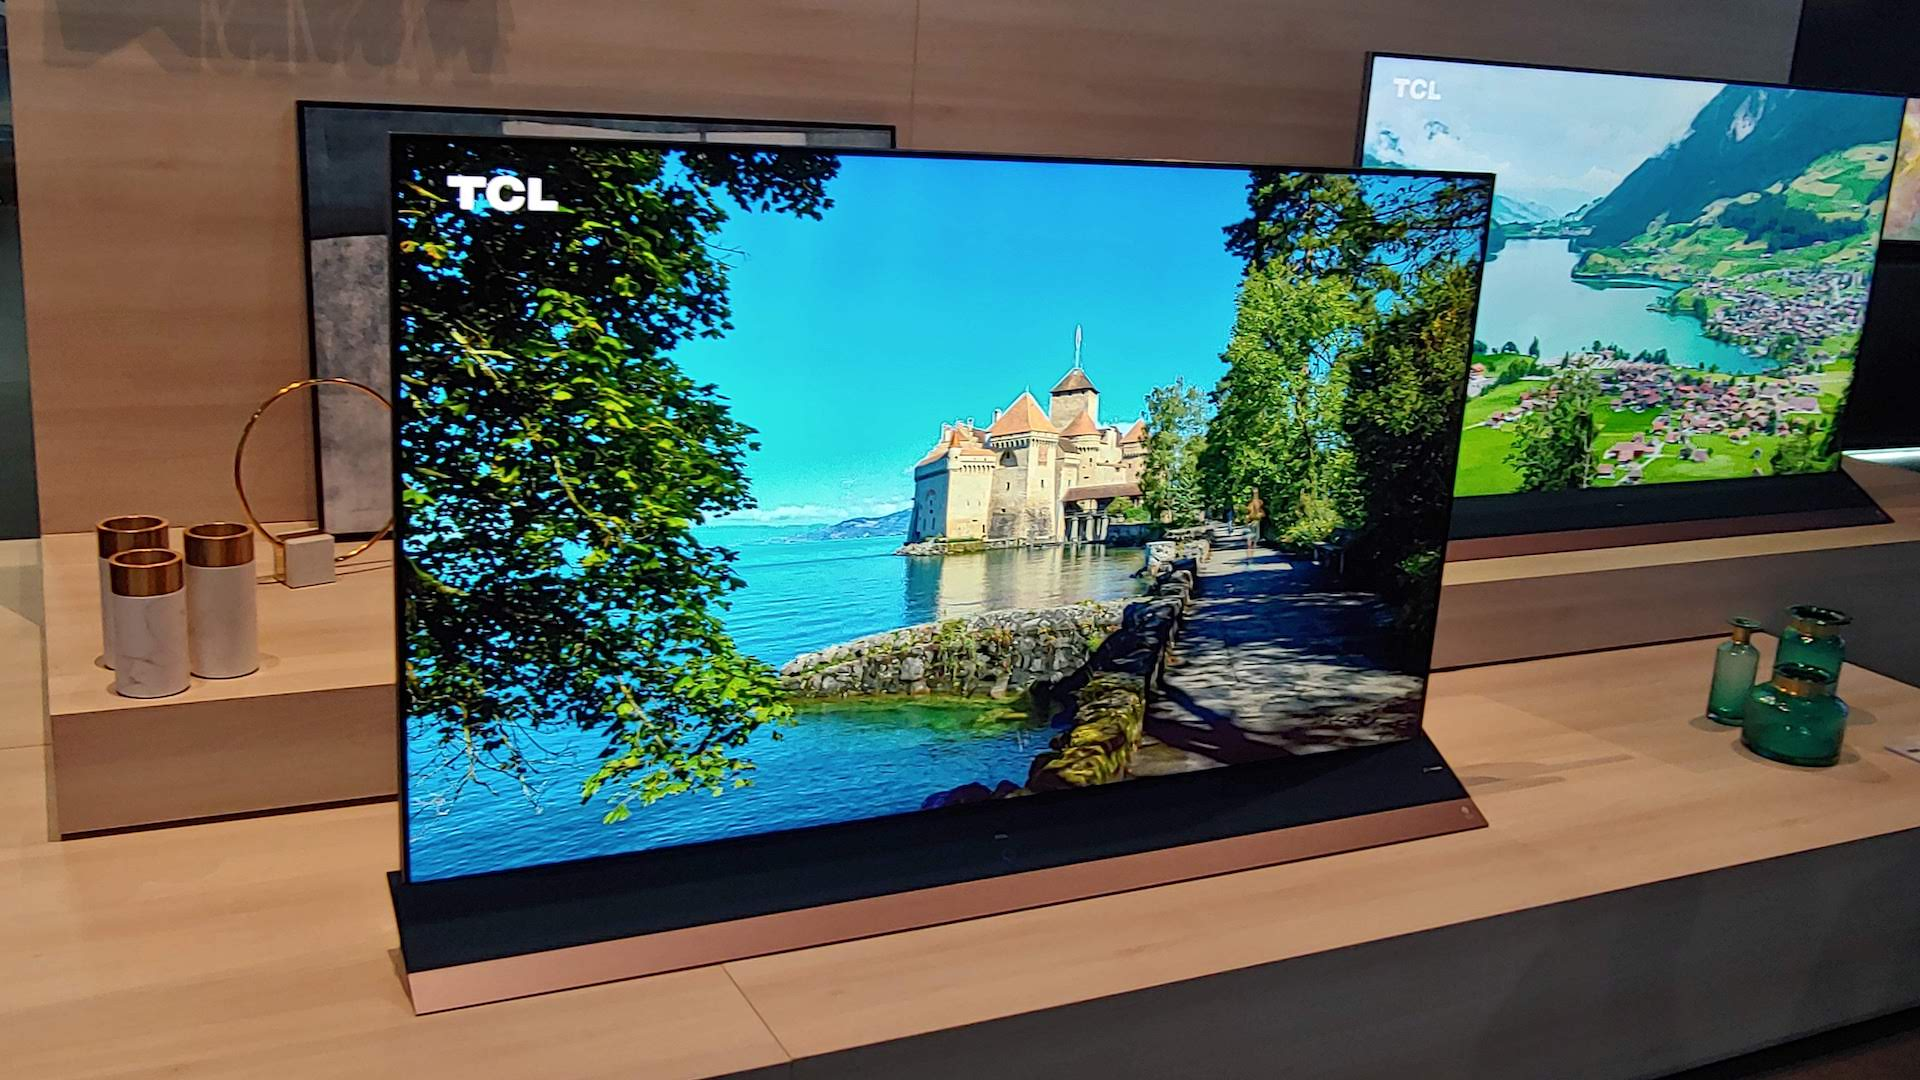 Hypegram First Look Tcl 8k Qled Tv With Dolby Atmos Is An All In